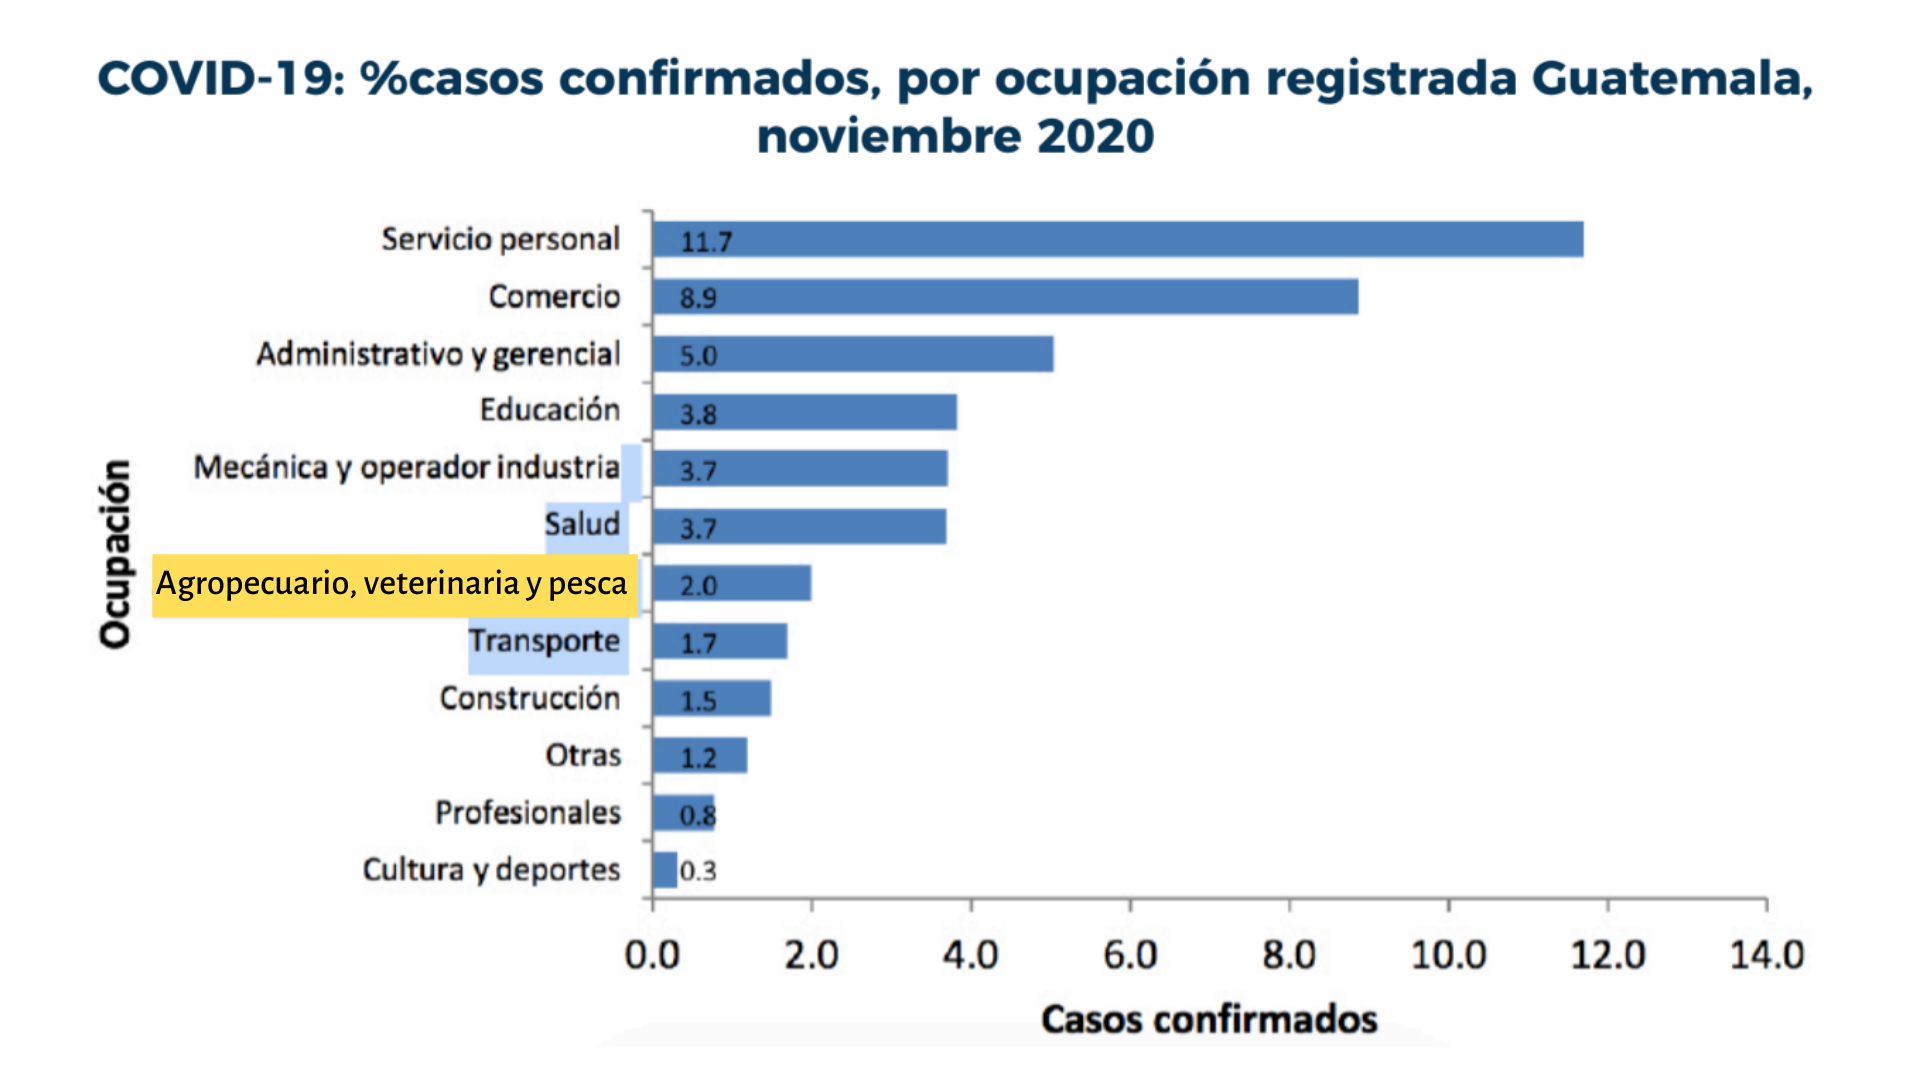 Bar graph released in the national vaccination plan ranking agricultural workers 7th in confirmed cases of COVID-19